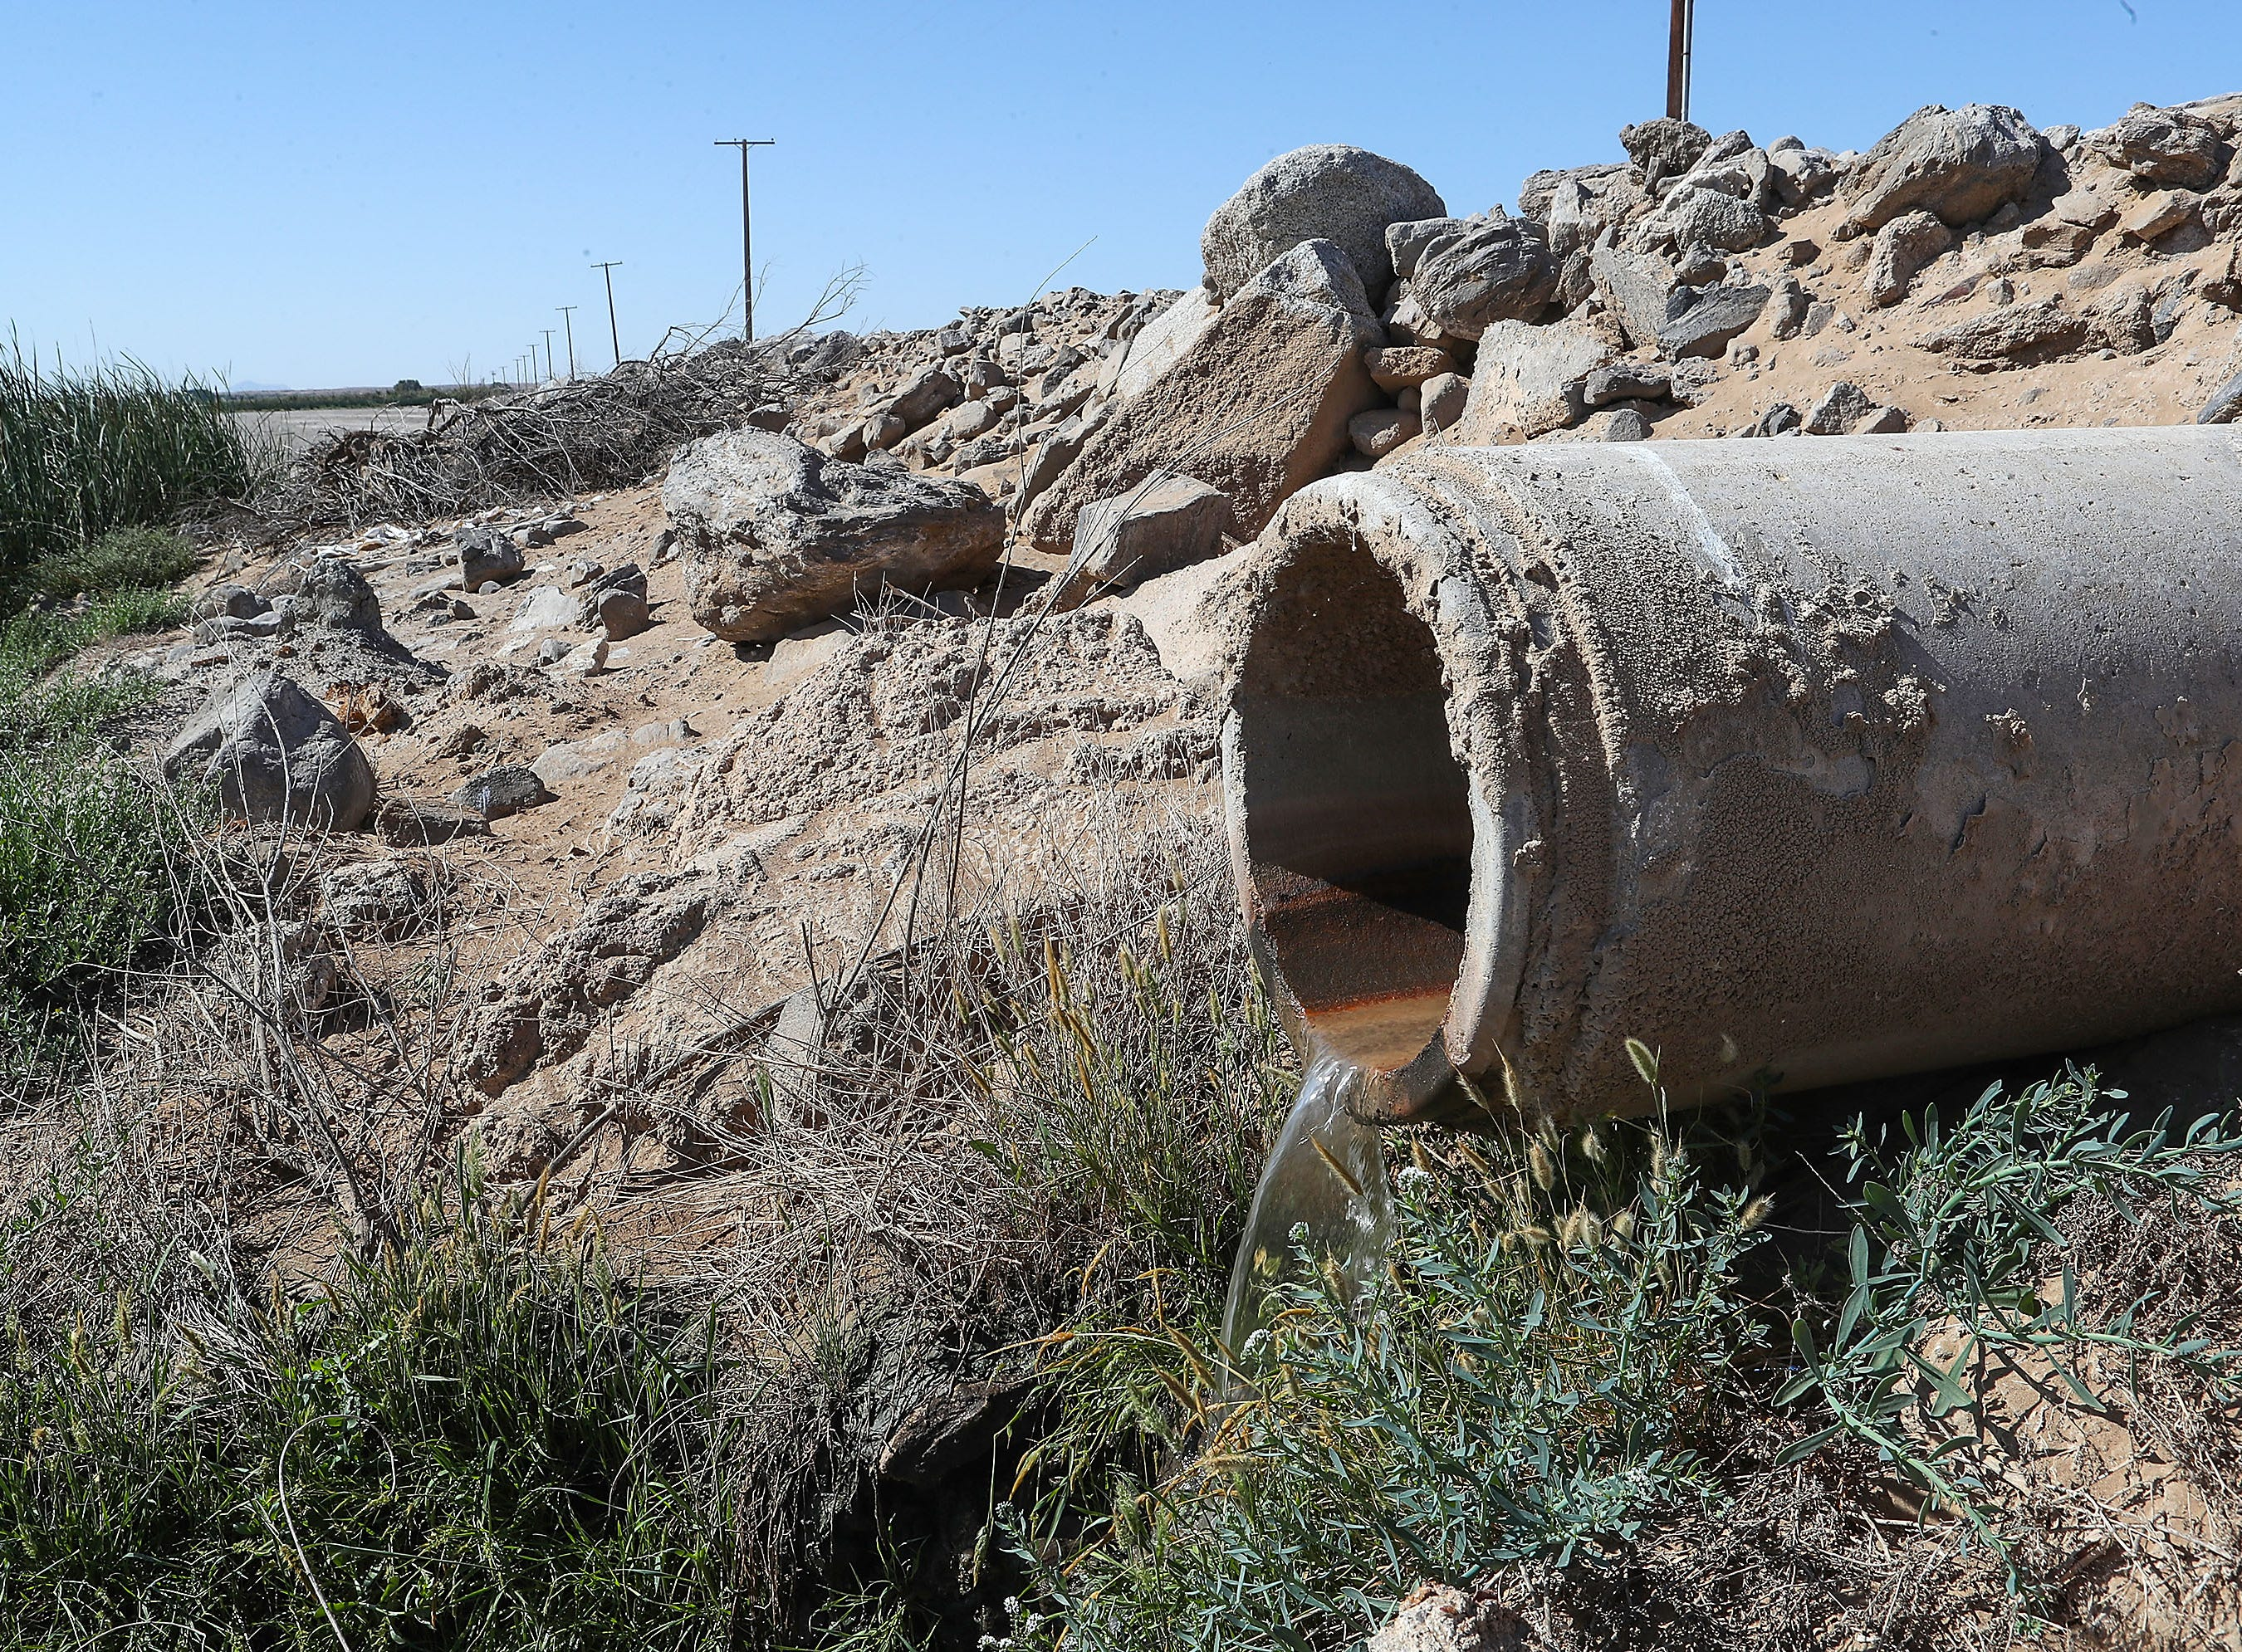 A drainage pipe carries farm runoff water to the Salton Sea from the Elmore Desert Ranch near Brawley, April 11, 2019.